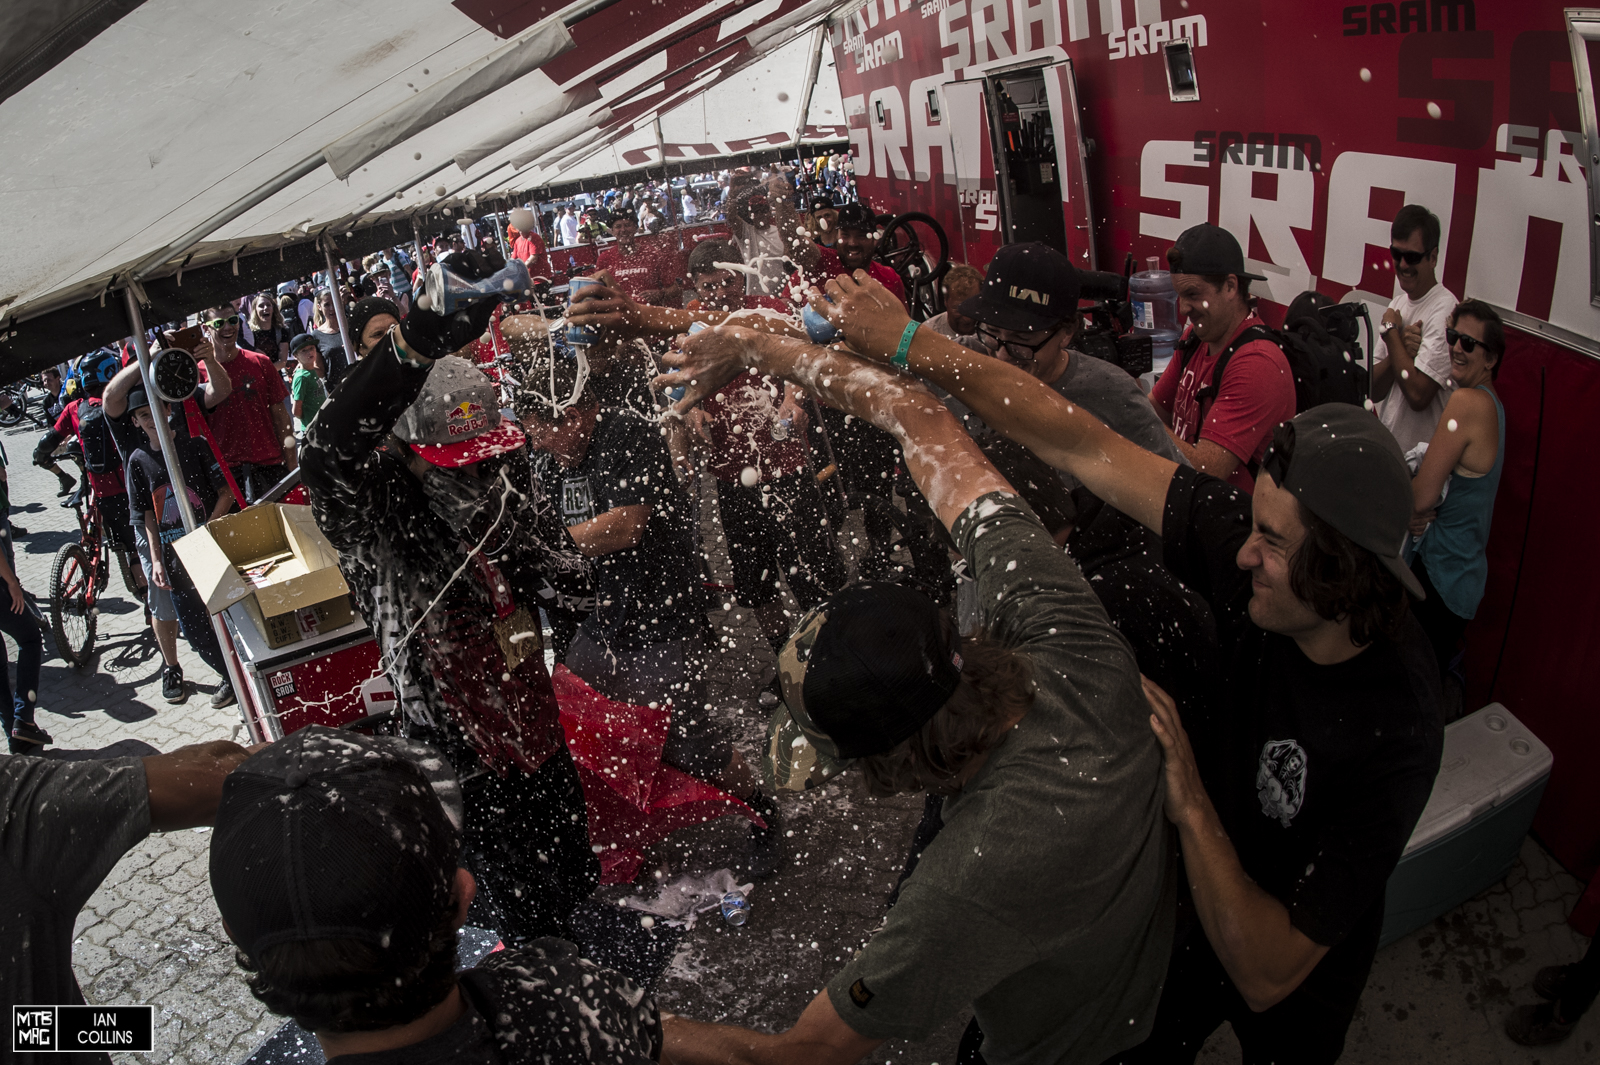 And a big beer shower.  What a show.  We feel so lucky to be a part of it.  Until next year.